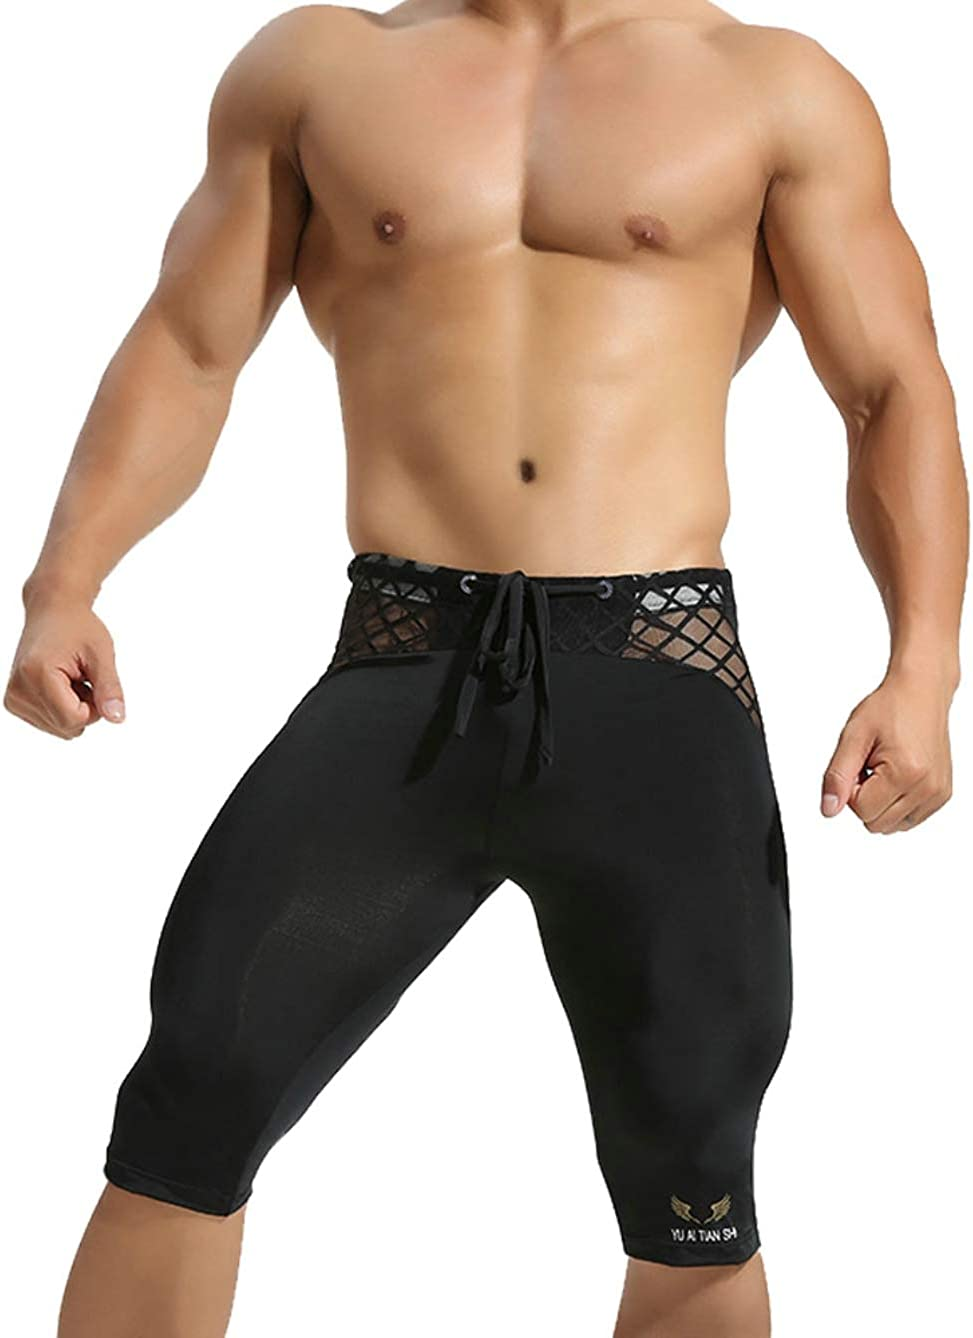 MuscleMate Hot Men's Short Sexy Skintight Transparent Men's Short for Hot Night Party Strip Club